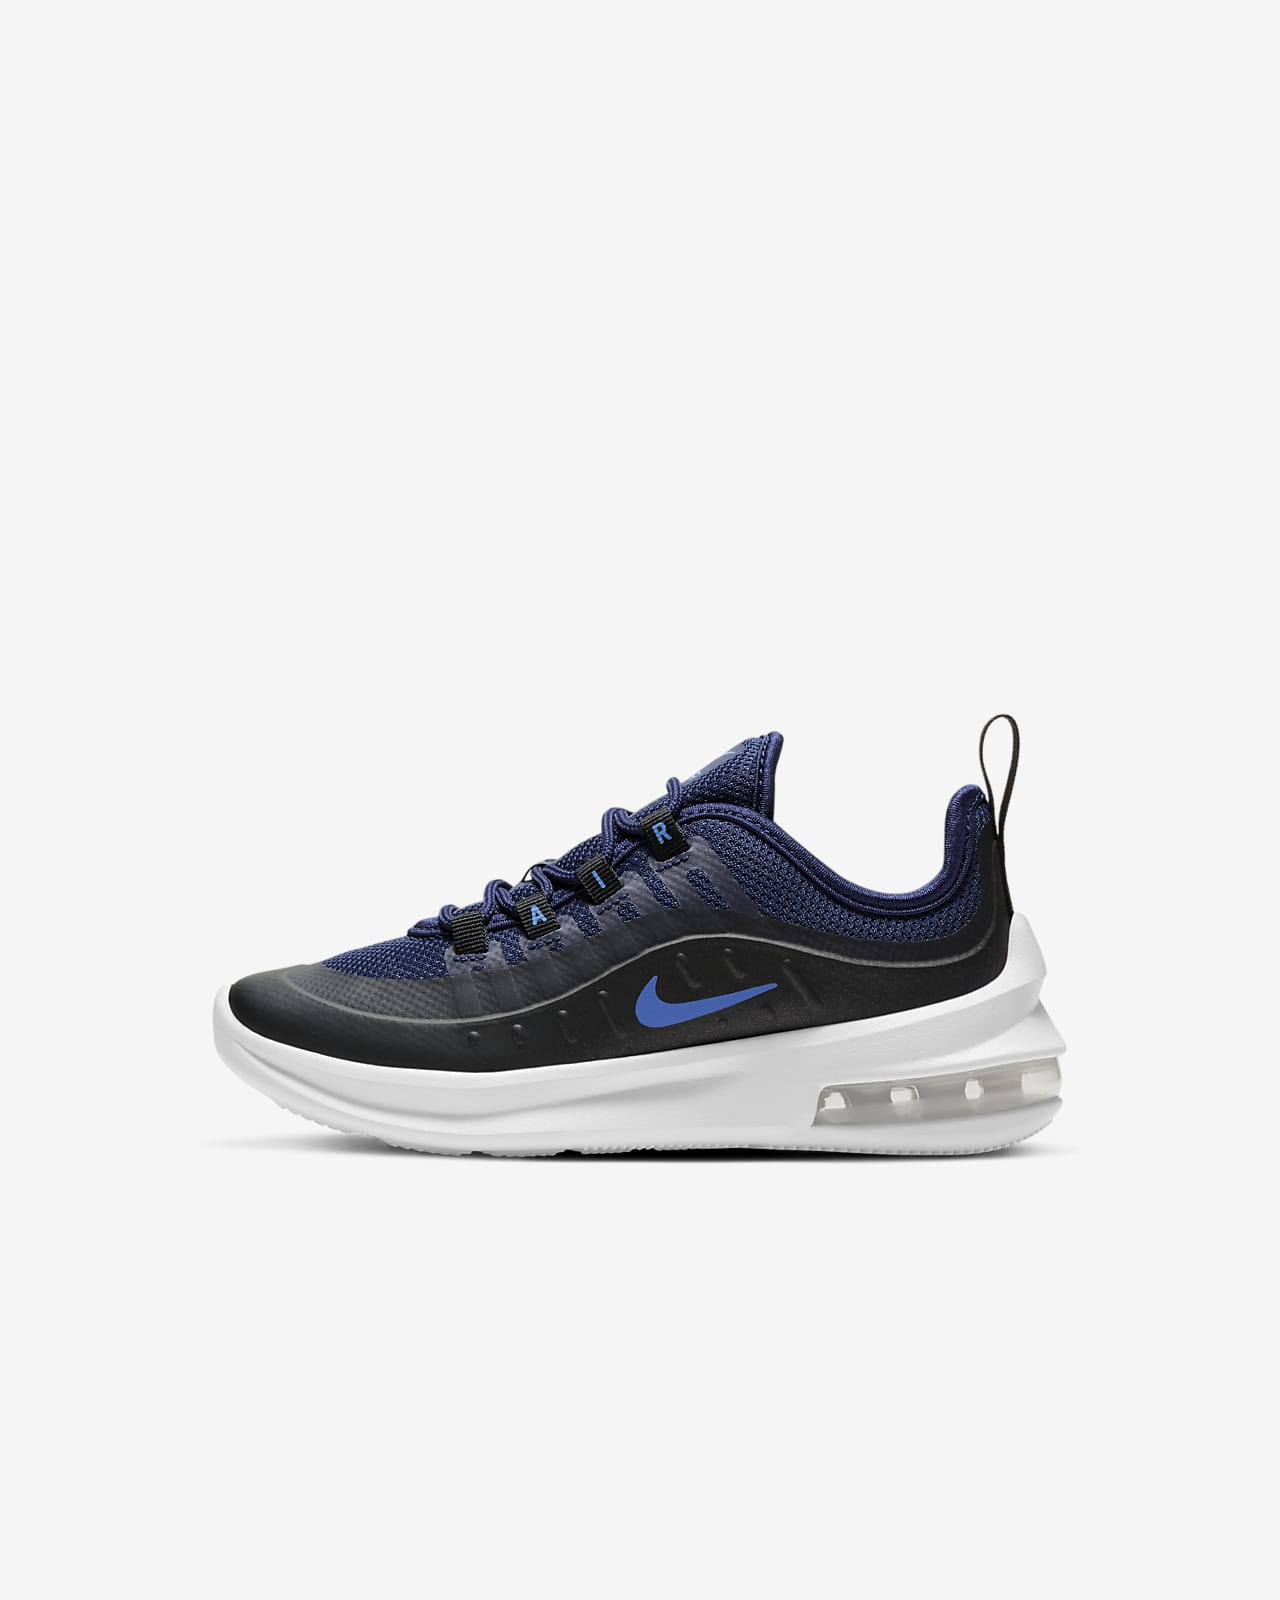 Nike Air Max Axis Little Kids' Shoe